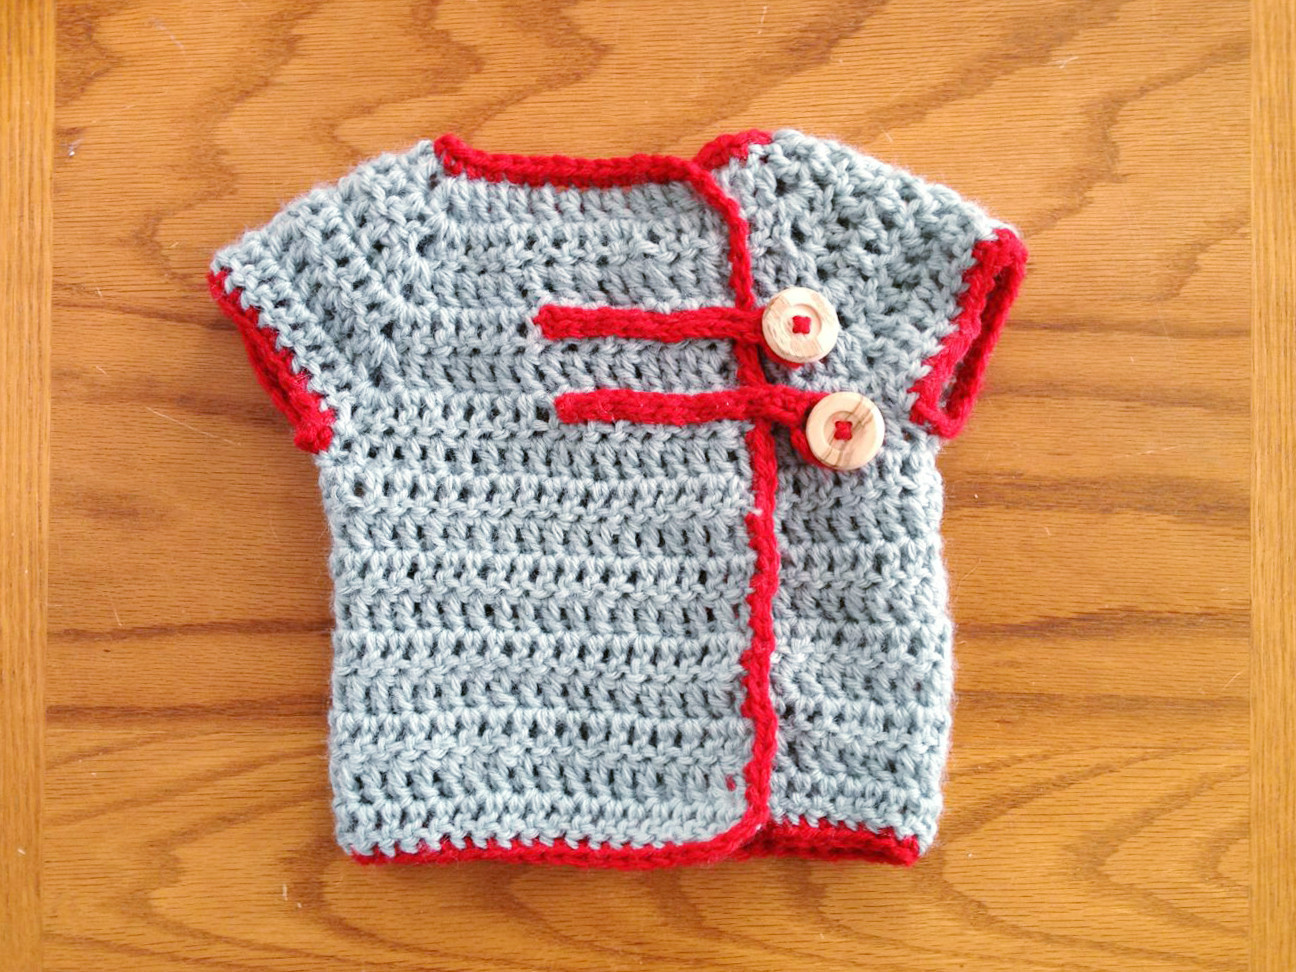 Easy Crochet Sweater Unique How to Make Crochet Sweater for Baby Of Fresh 46 Ideas Easy Crochet Sweater